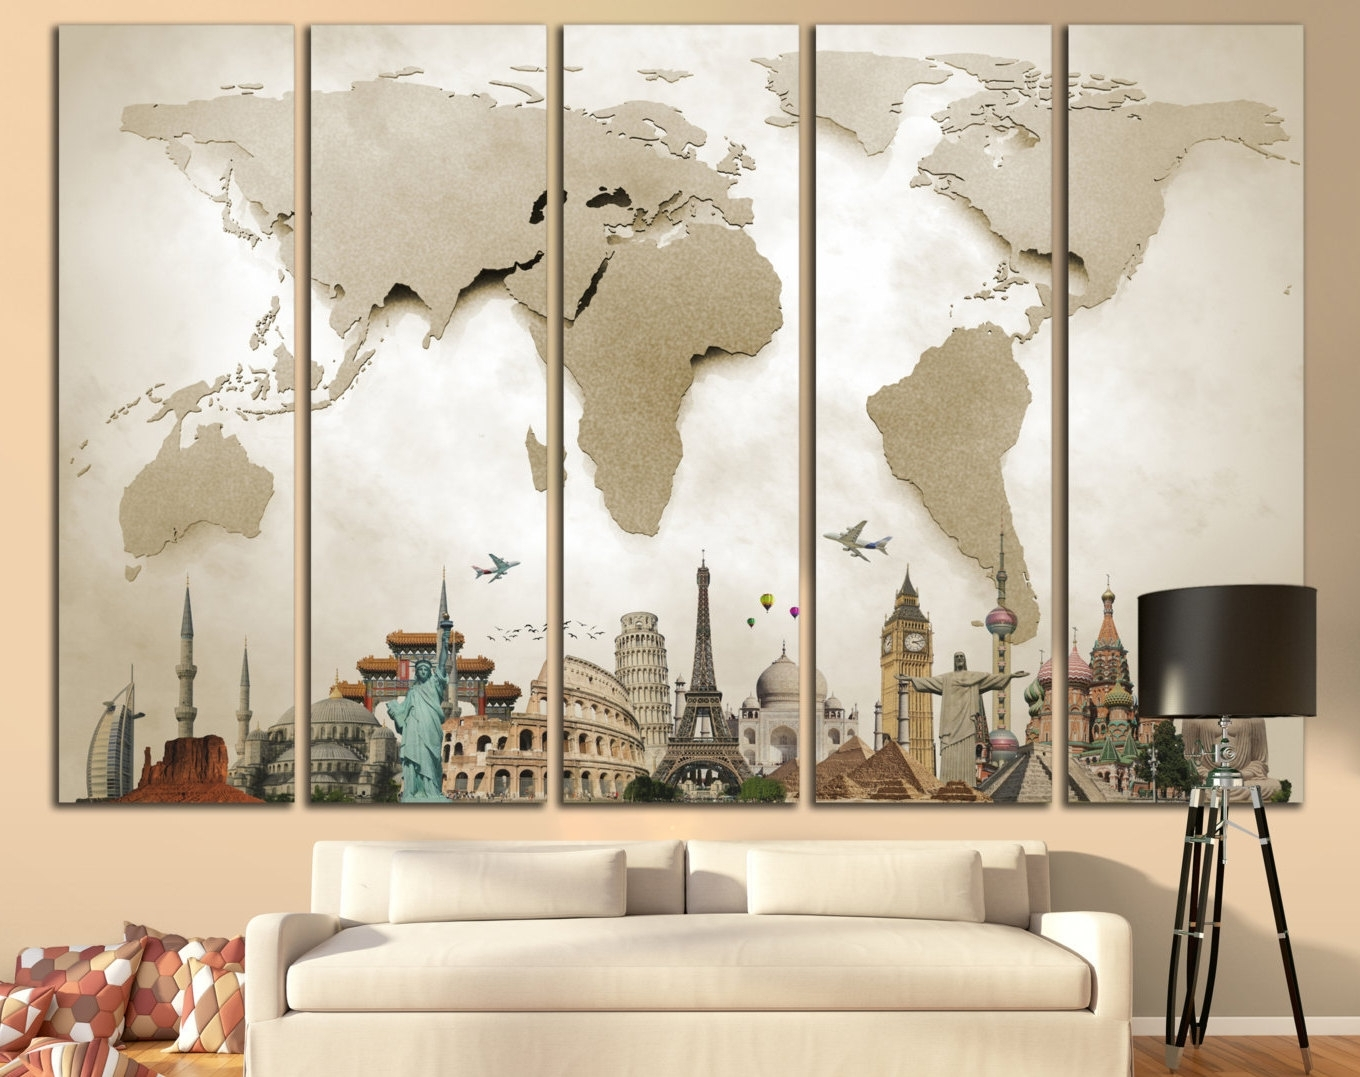 Most Current Maps Wall Art Within Large Wall Decor Ideas Maps : Amazing Large Wall Decor Ideas Options (View 10 of 20)